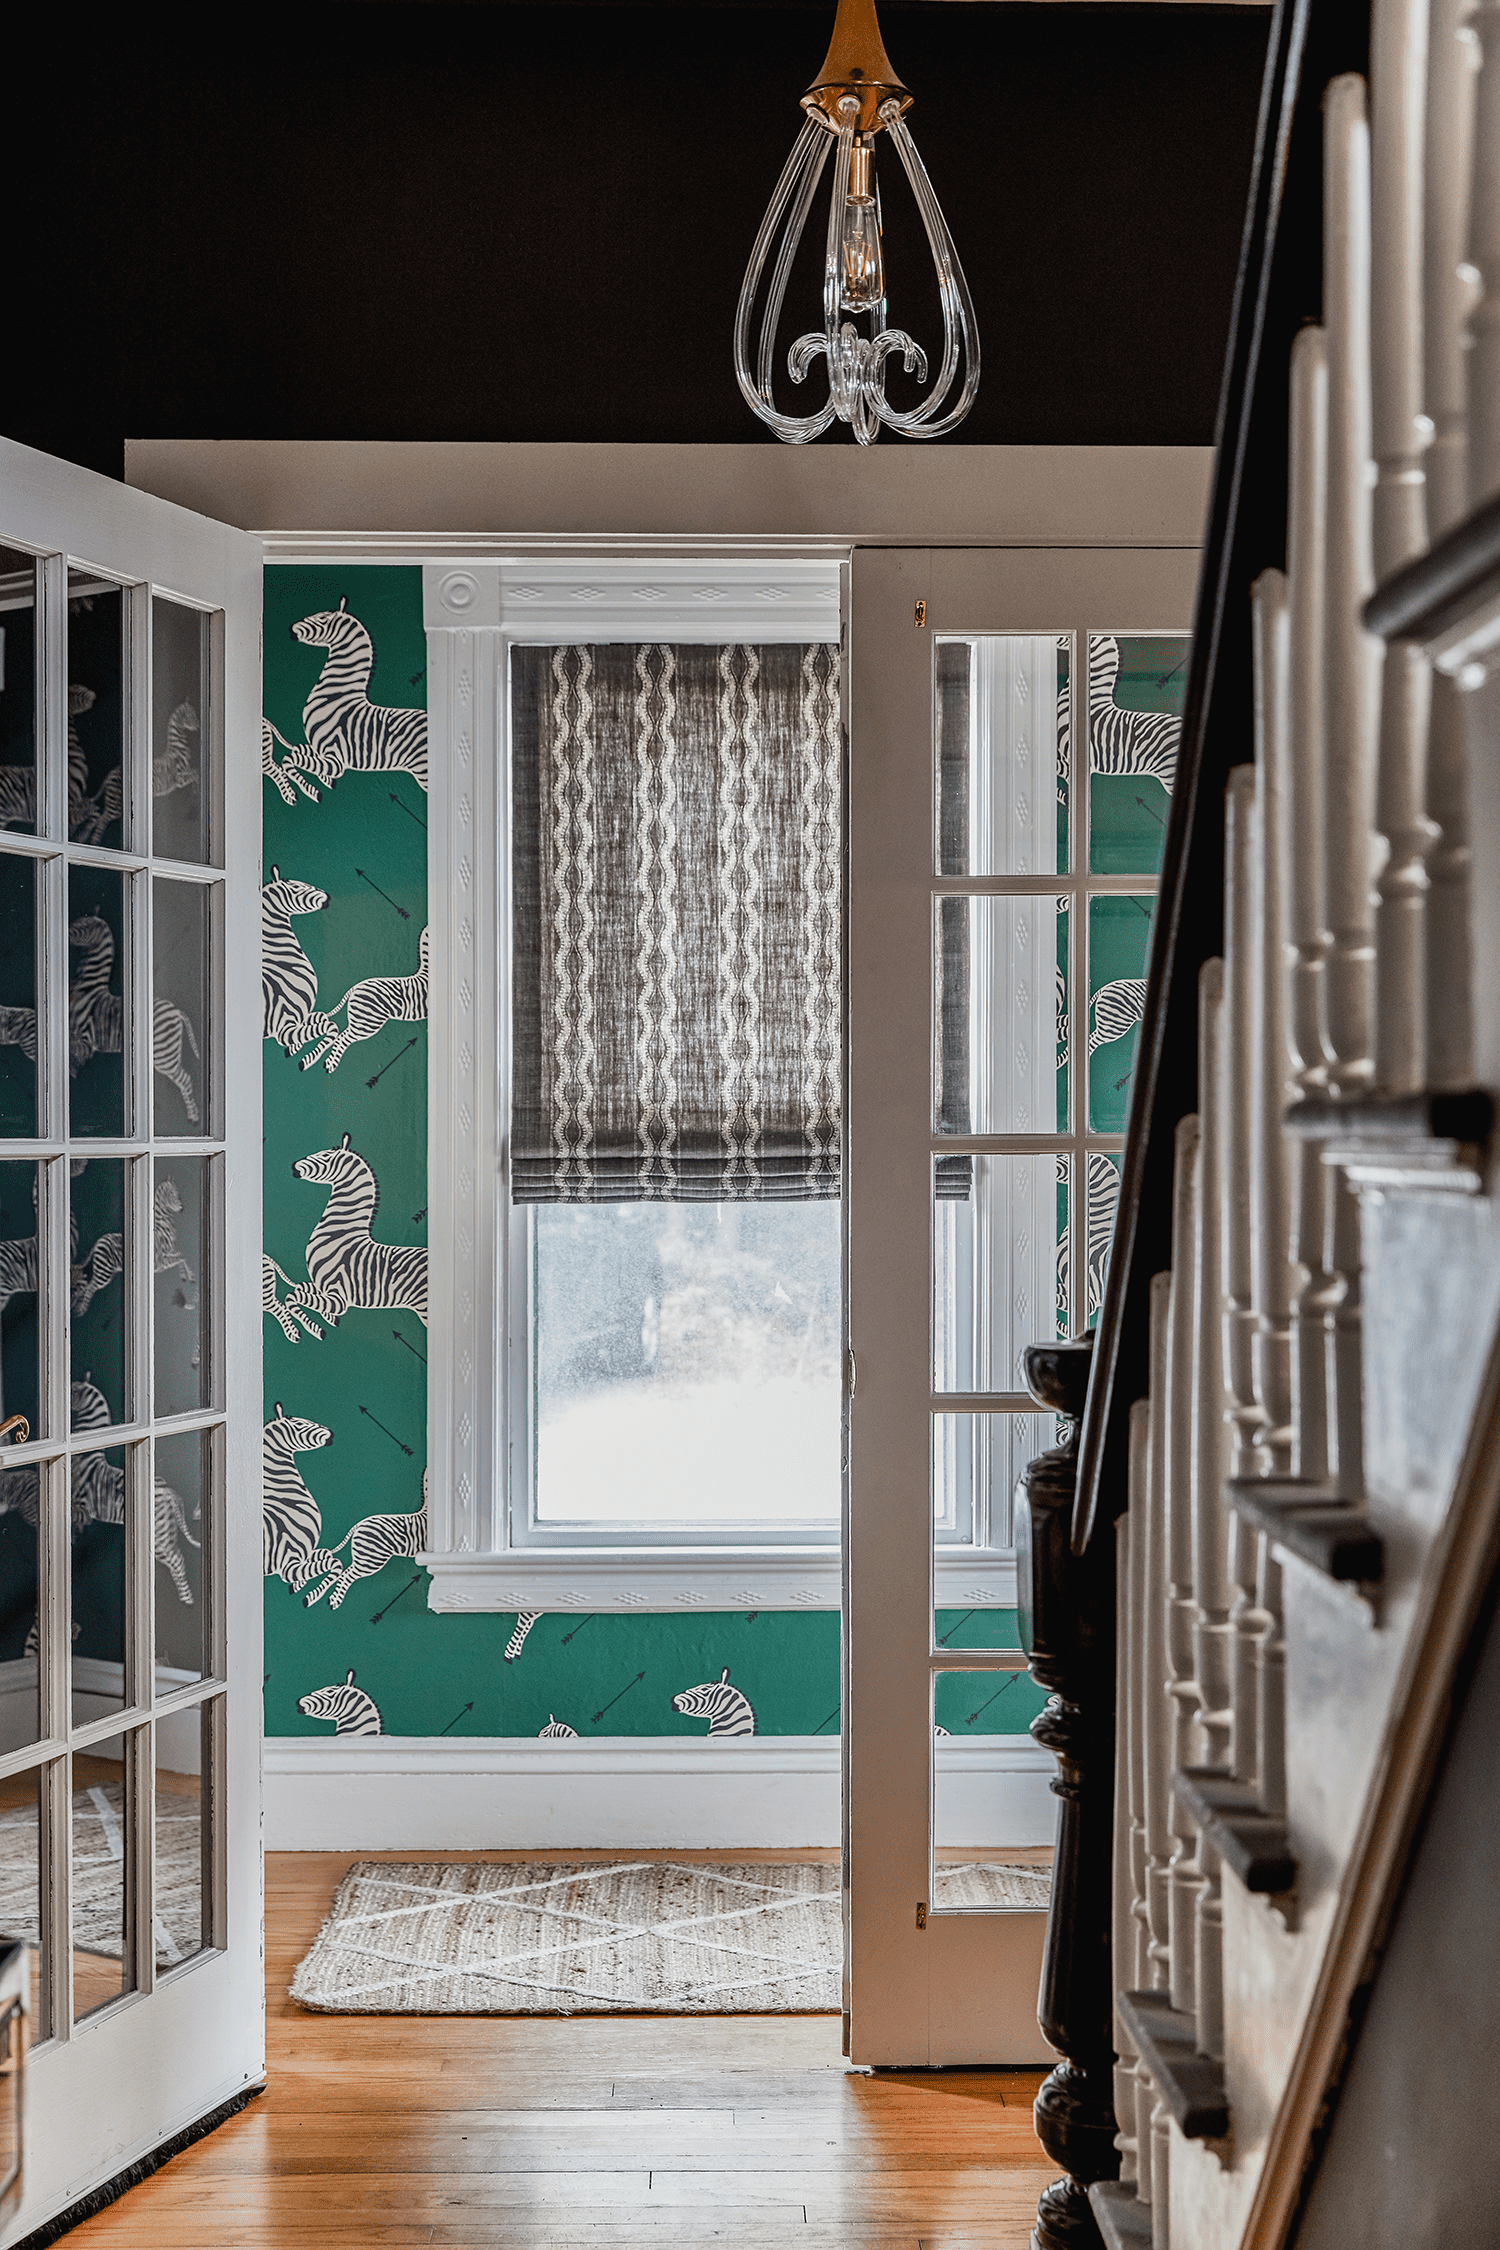 scalamandré zebras wallcovering - green pattern in house